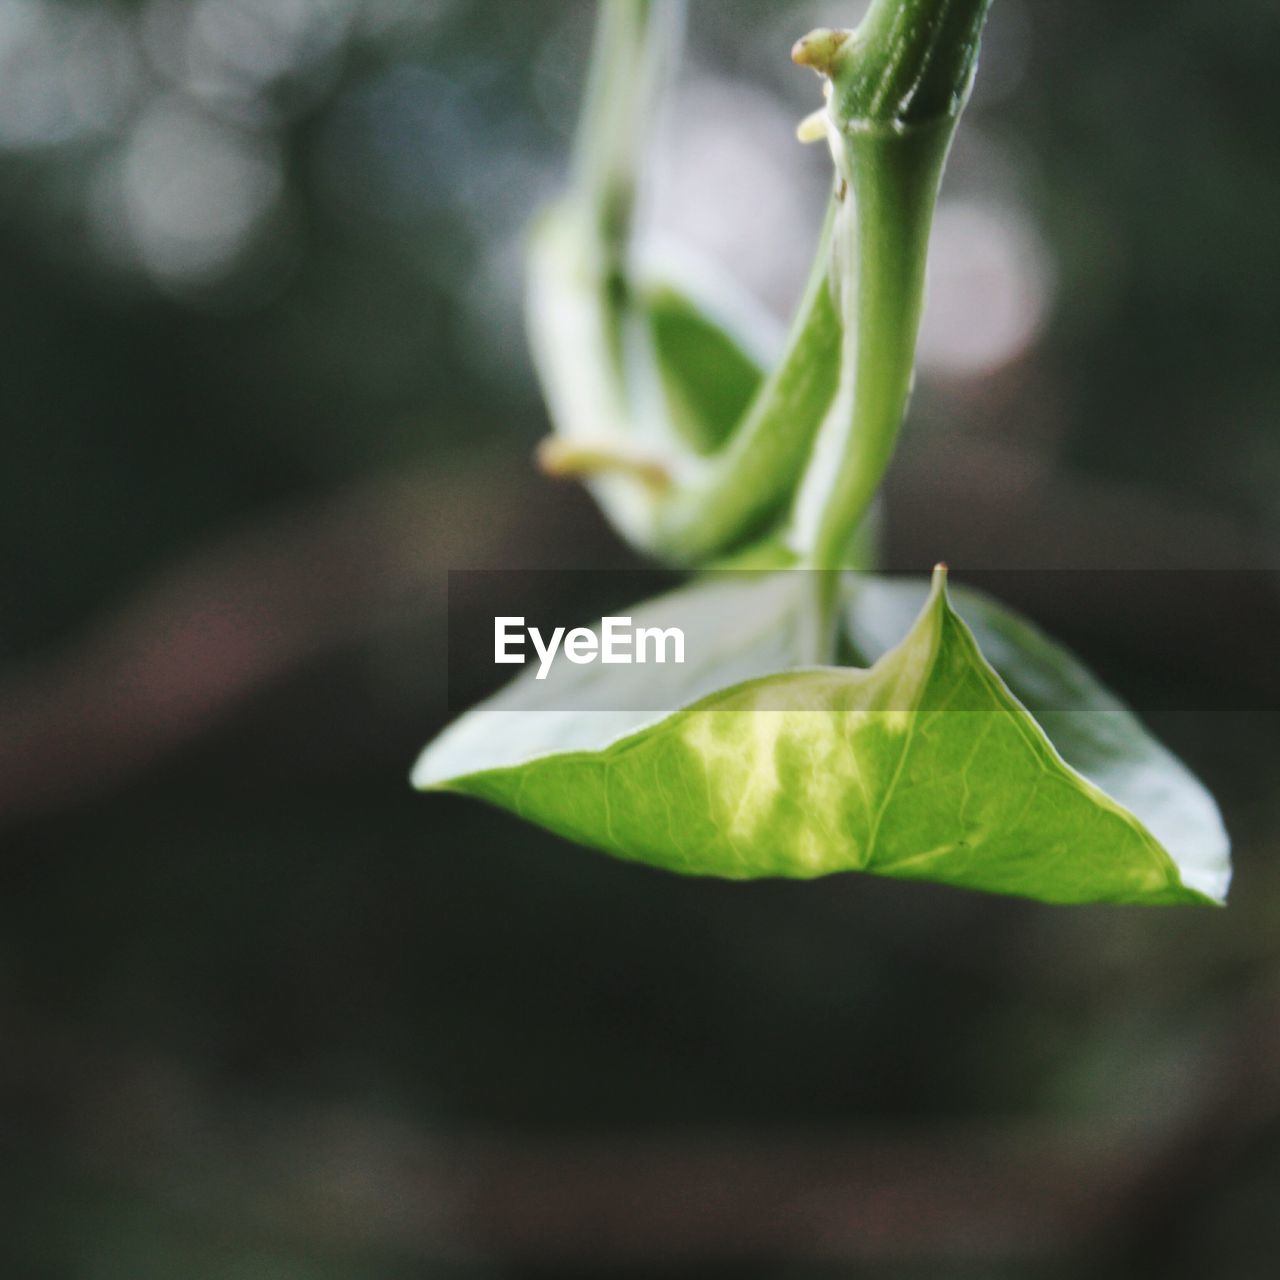 plant part, leaf, growth, plant, green color, close-up, beauty in nature, nature, no people, selective focus, freshness, day, outdoors, focus on foreground, vulnerability, fragility, beginnings, food, new life, food and drink, leaves